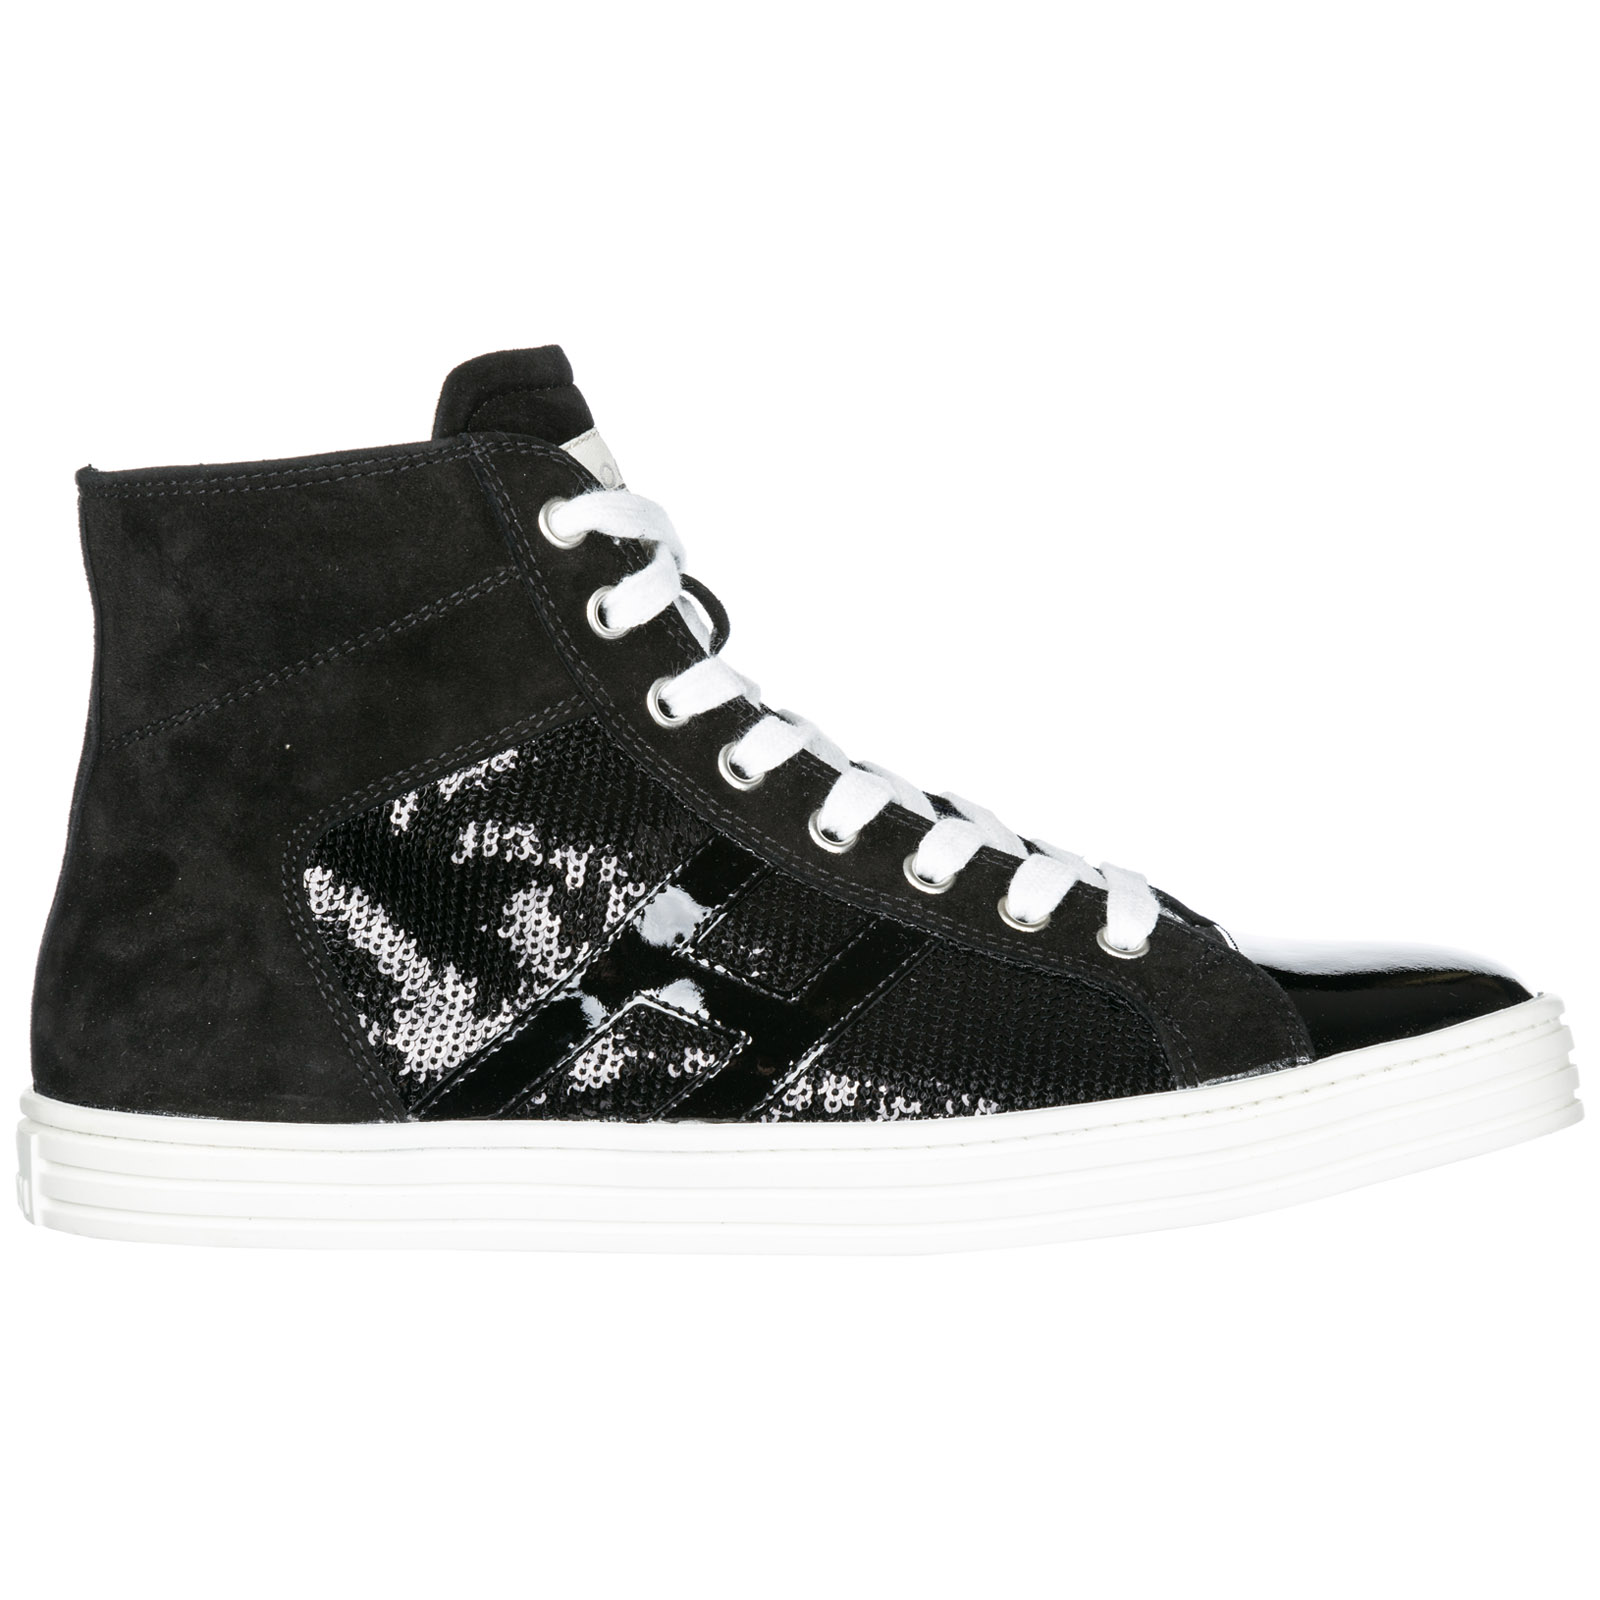 limited guantity low cost usa cheap sale Hogan Rebel Women's Shoes High Top Suede Trainers Sneakers R141 In ...